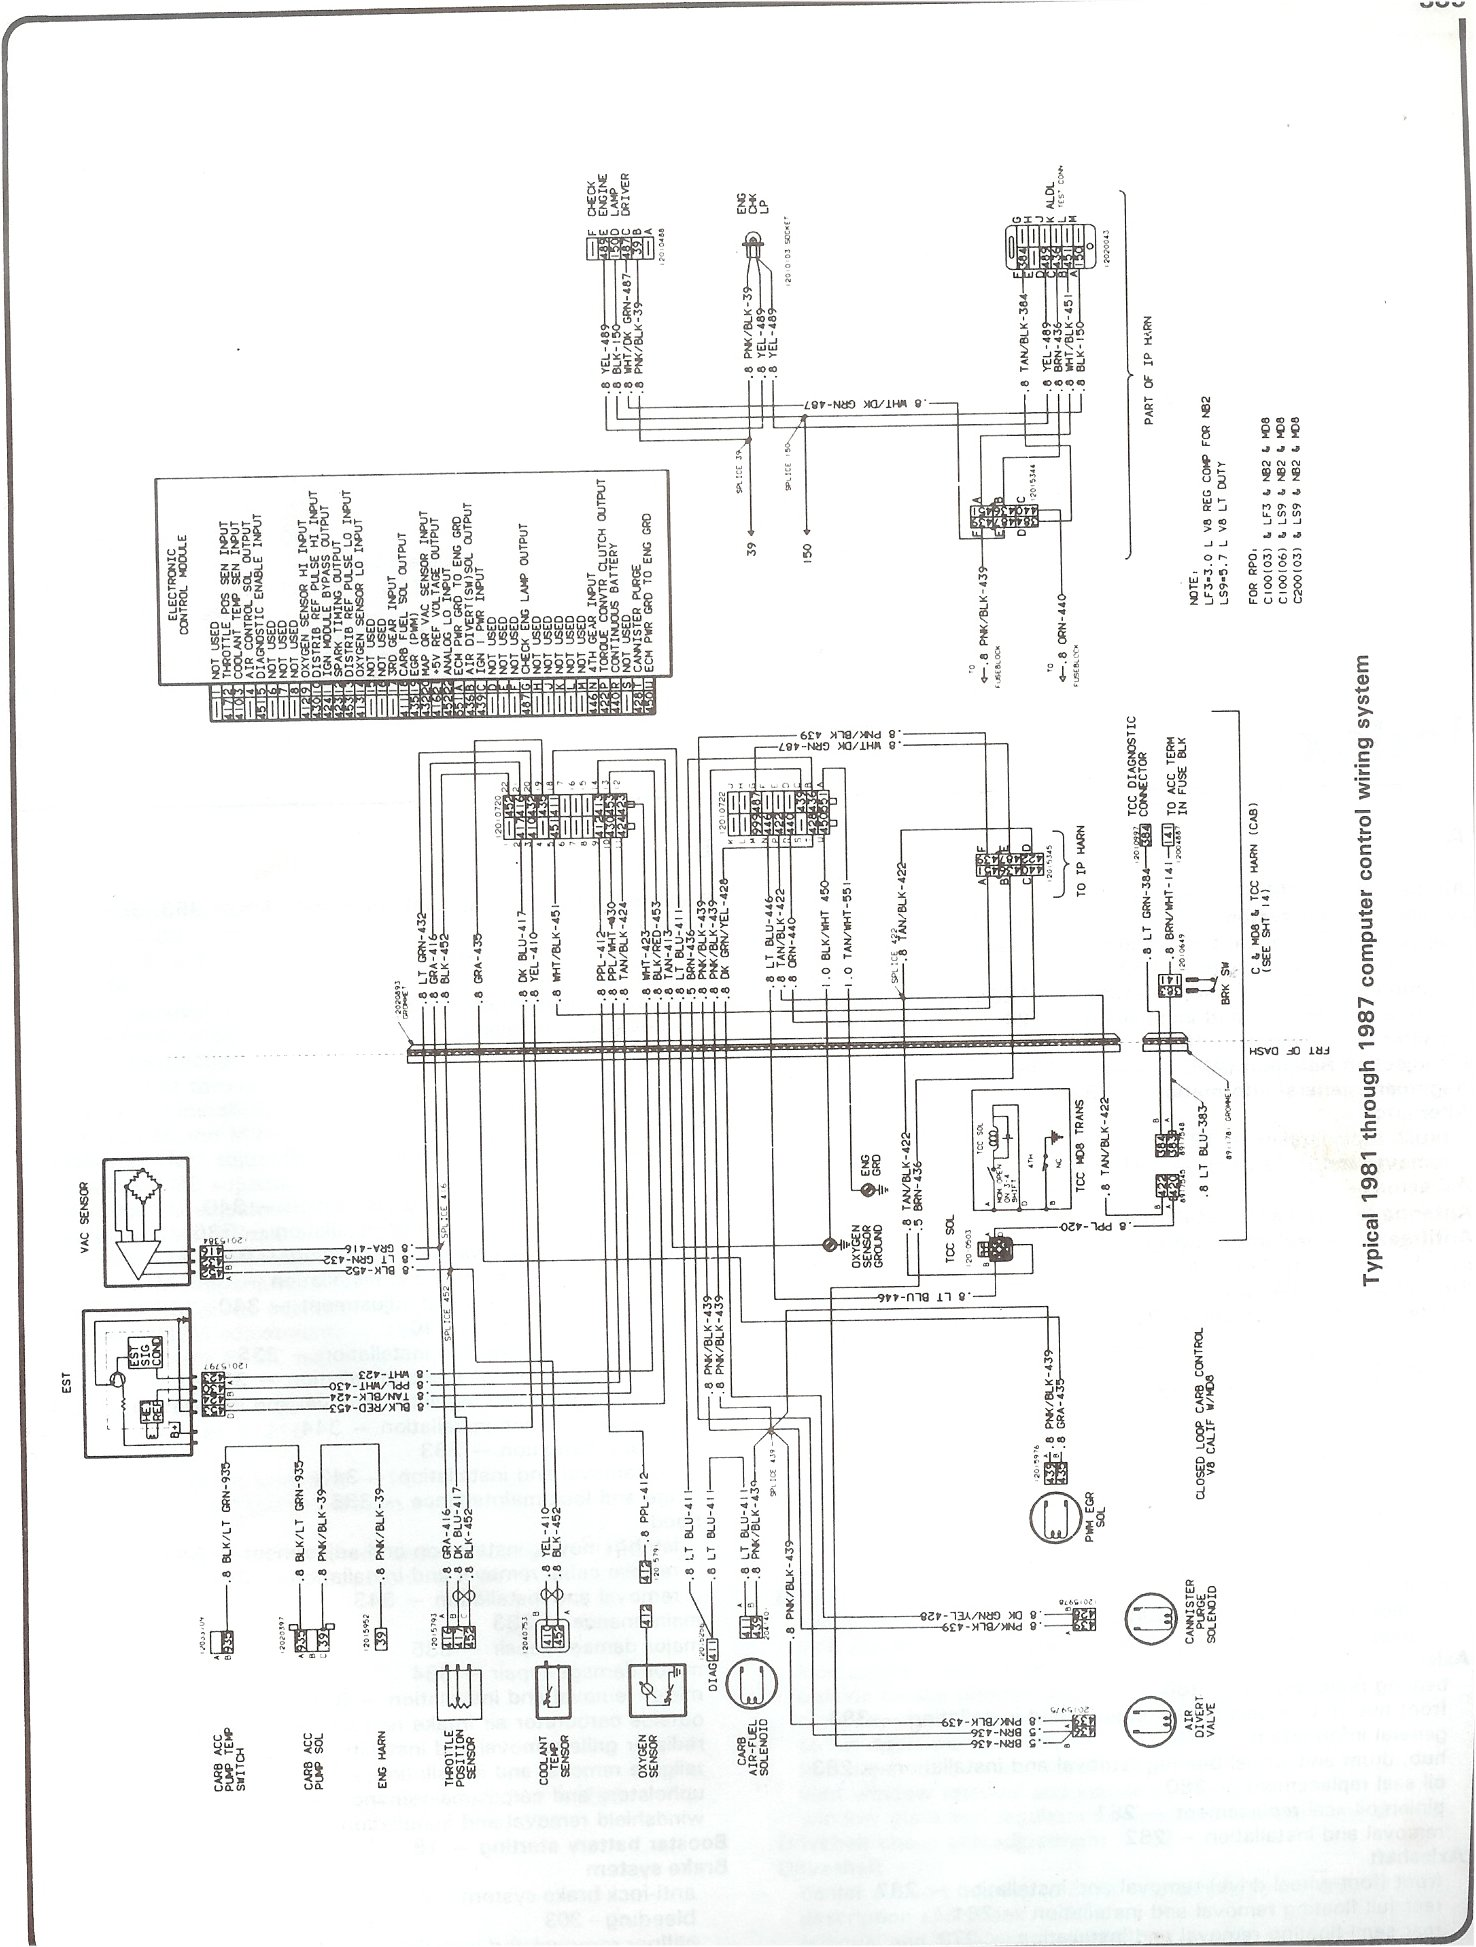 Door Lock Wiring Diagram Also 1979 Chevy 1 2 Ton Silverado Complete 73 87 Diagrams Truck